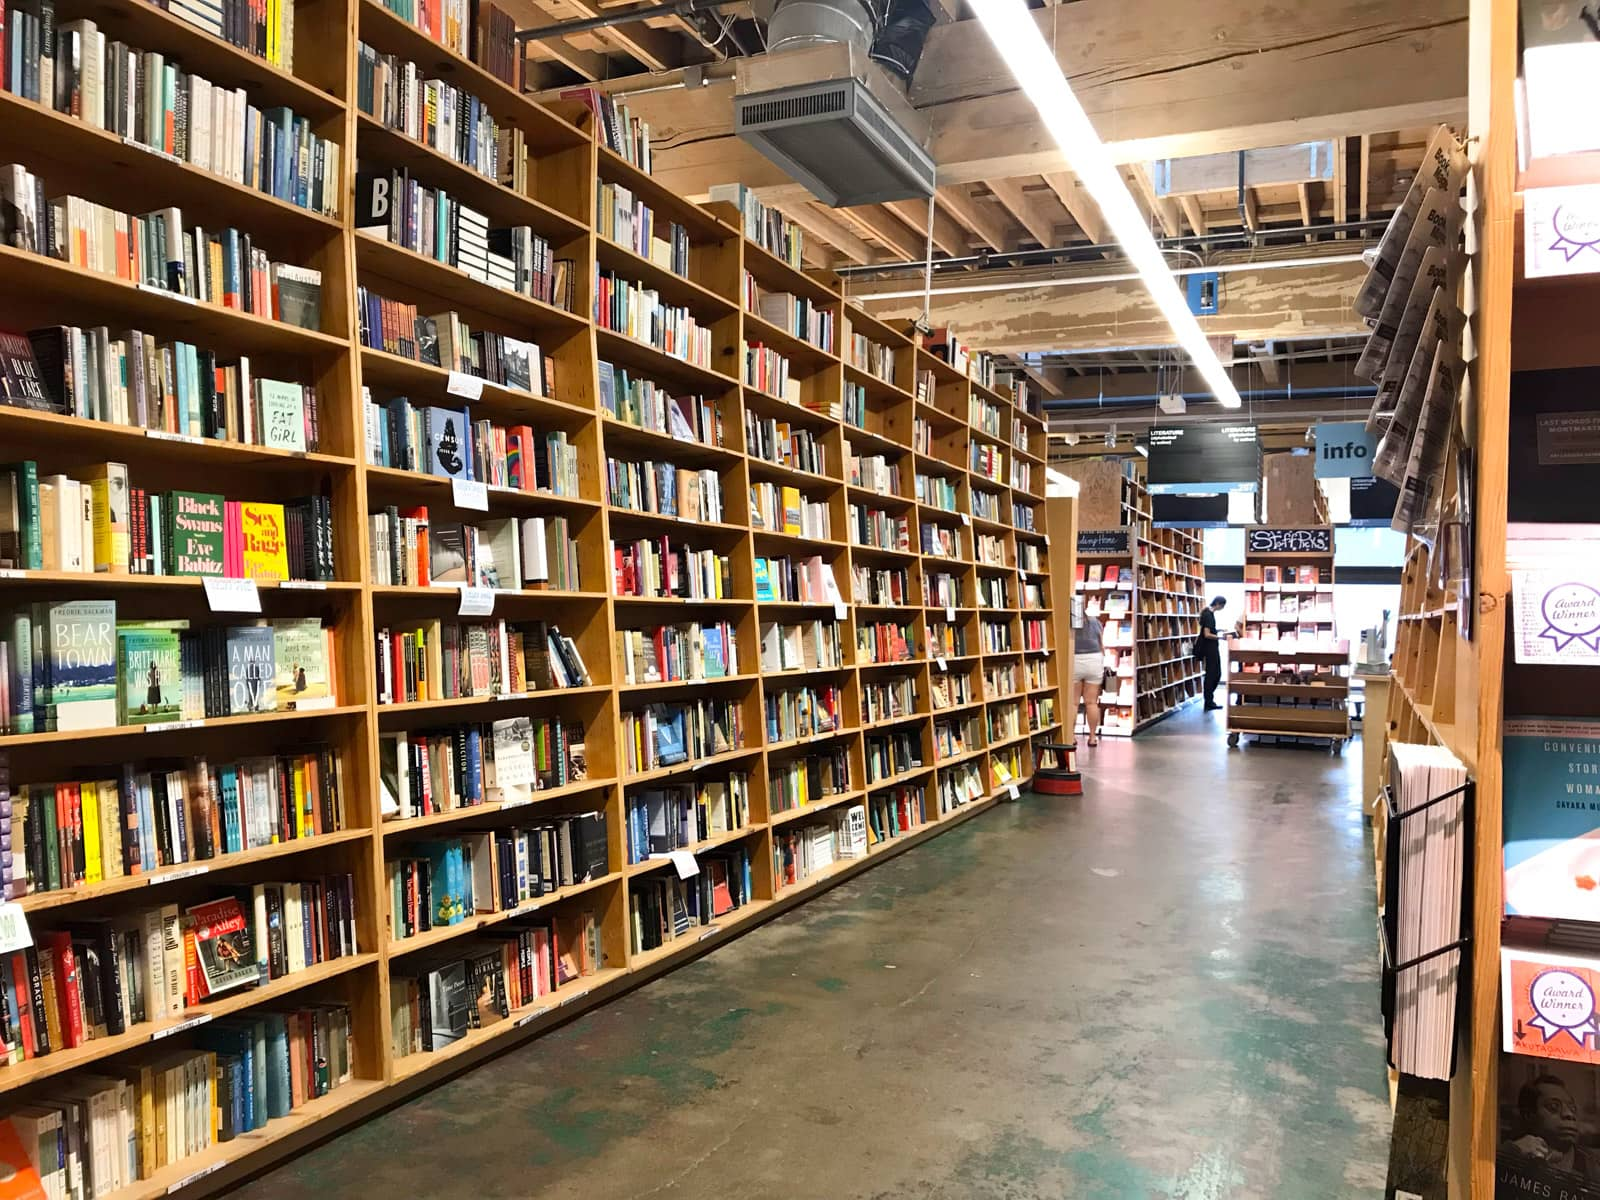 The aisle of a large bookstore, with wooden shelves as tall the ceiling. All the shelves are full of books